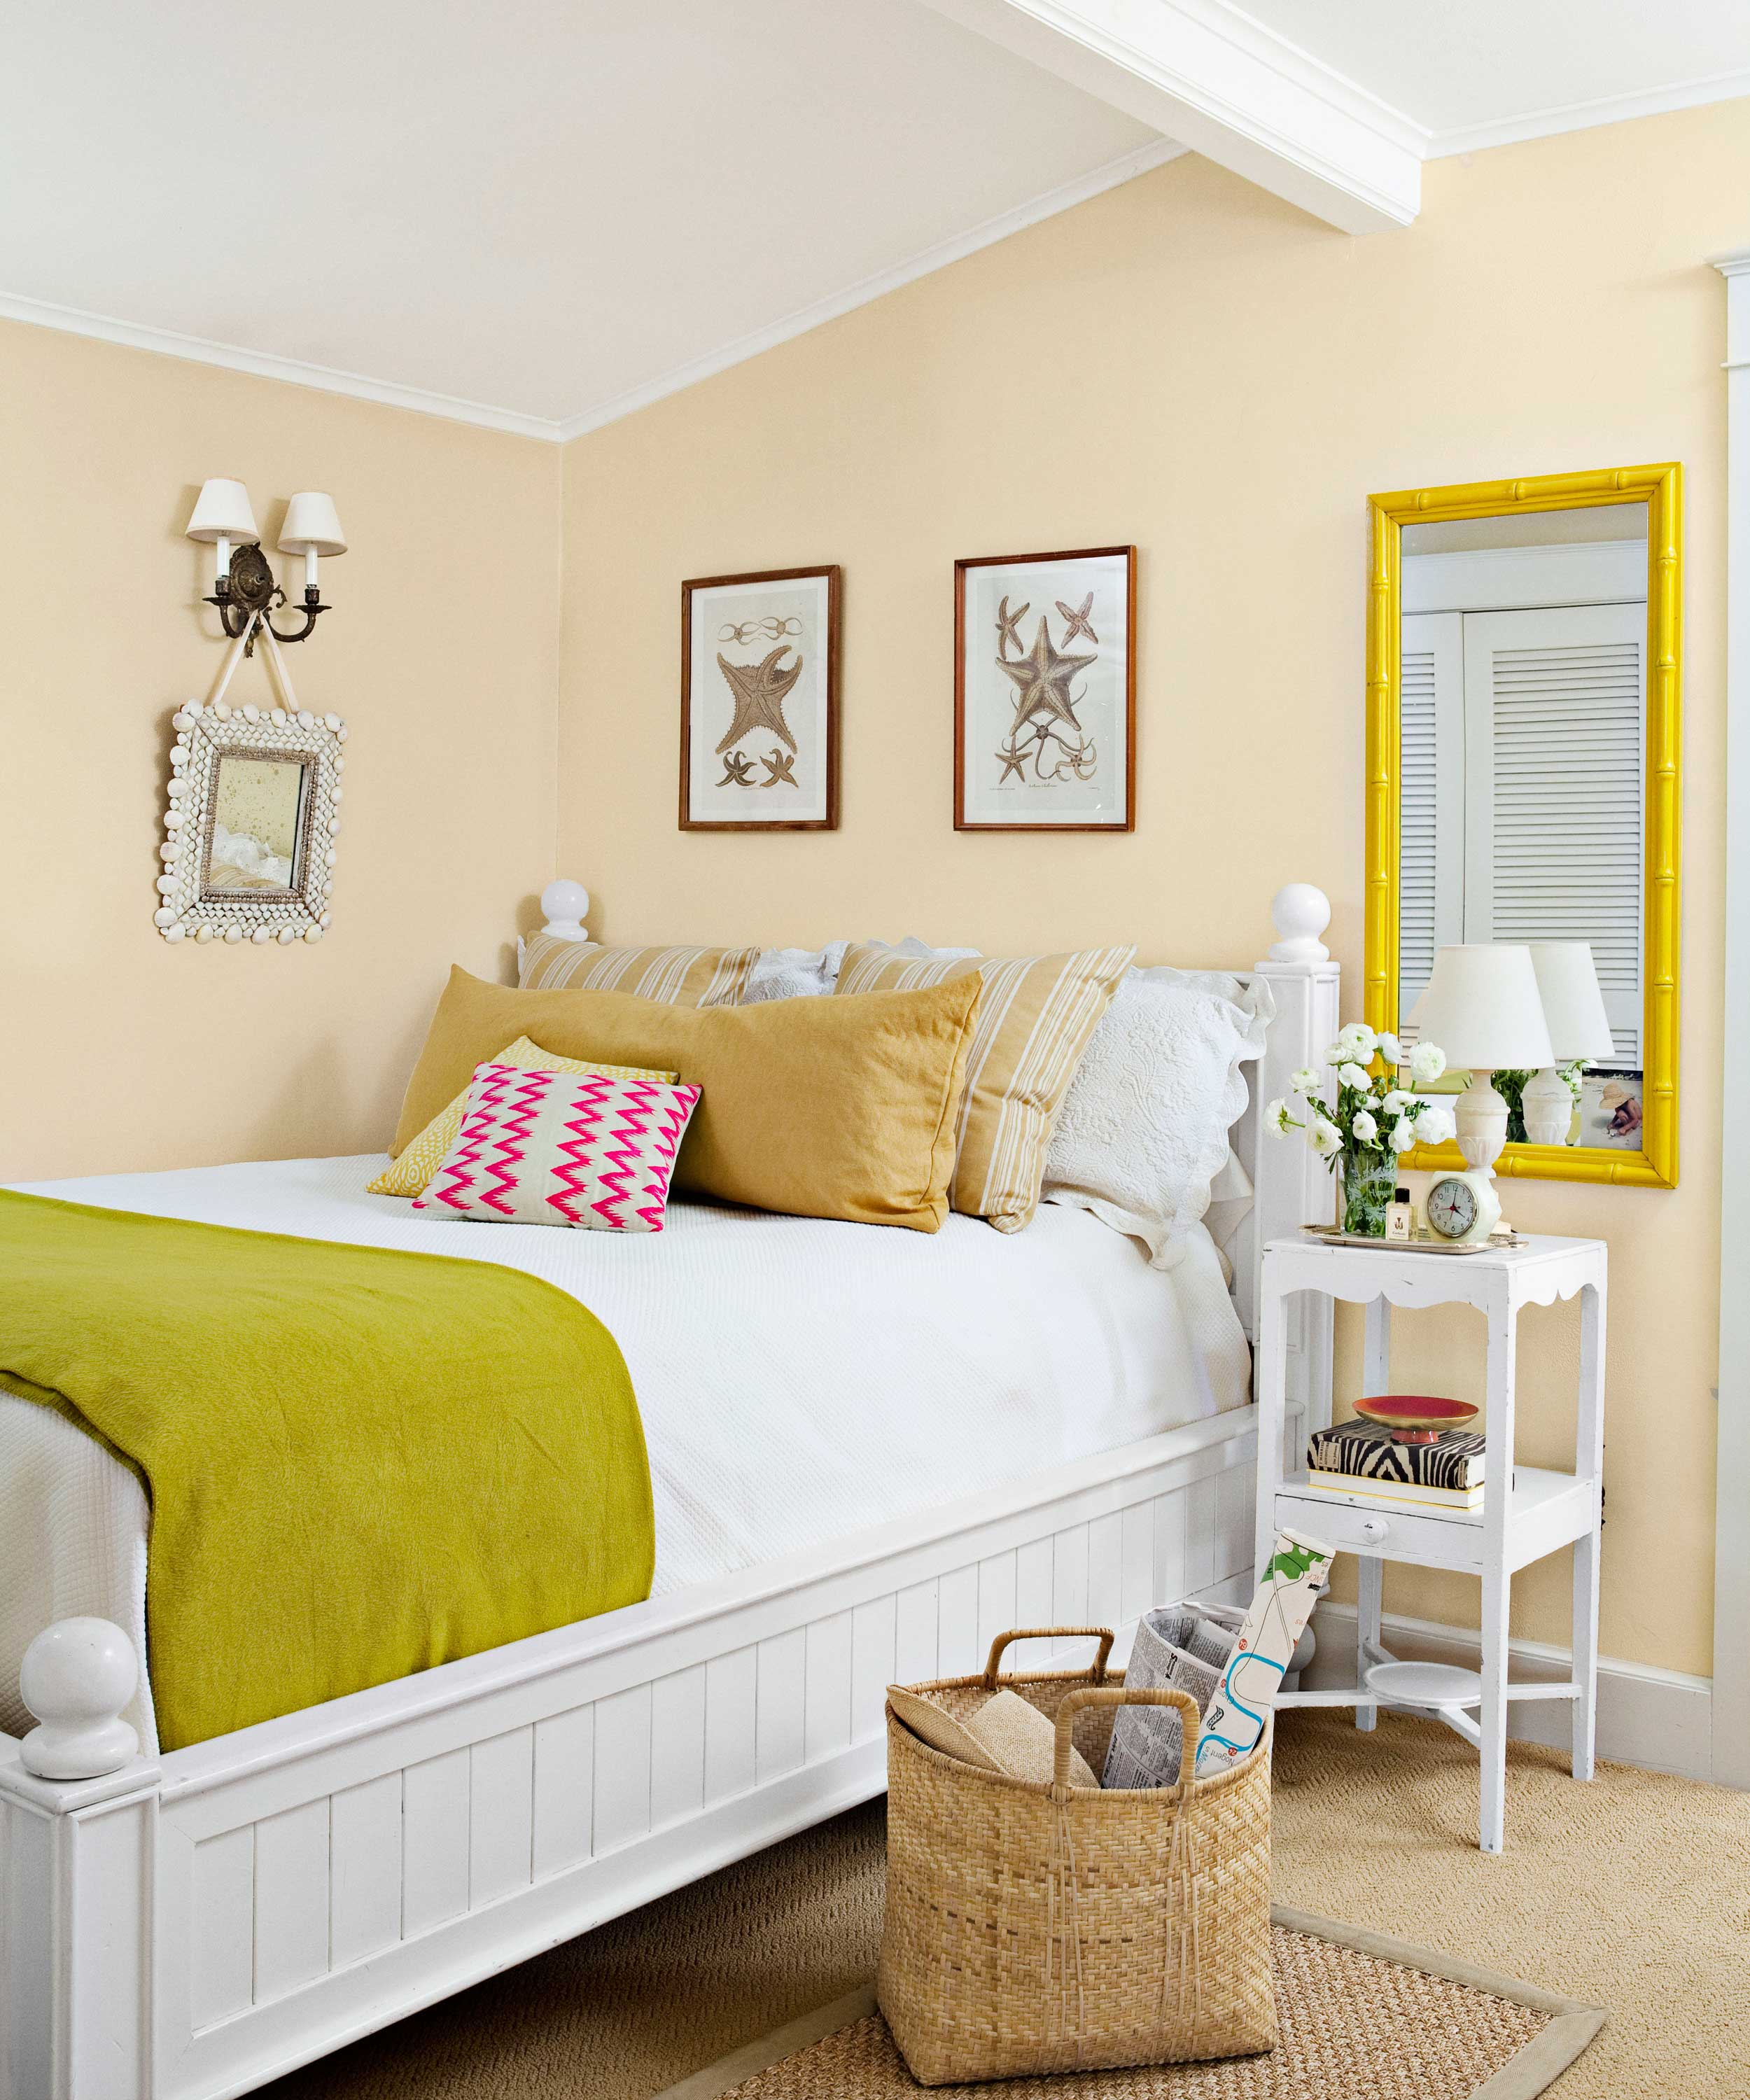 Lovely Paint Colors For Small Bedrooms #10: Country Living Magazine